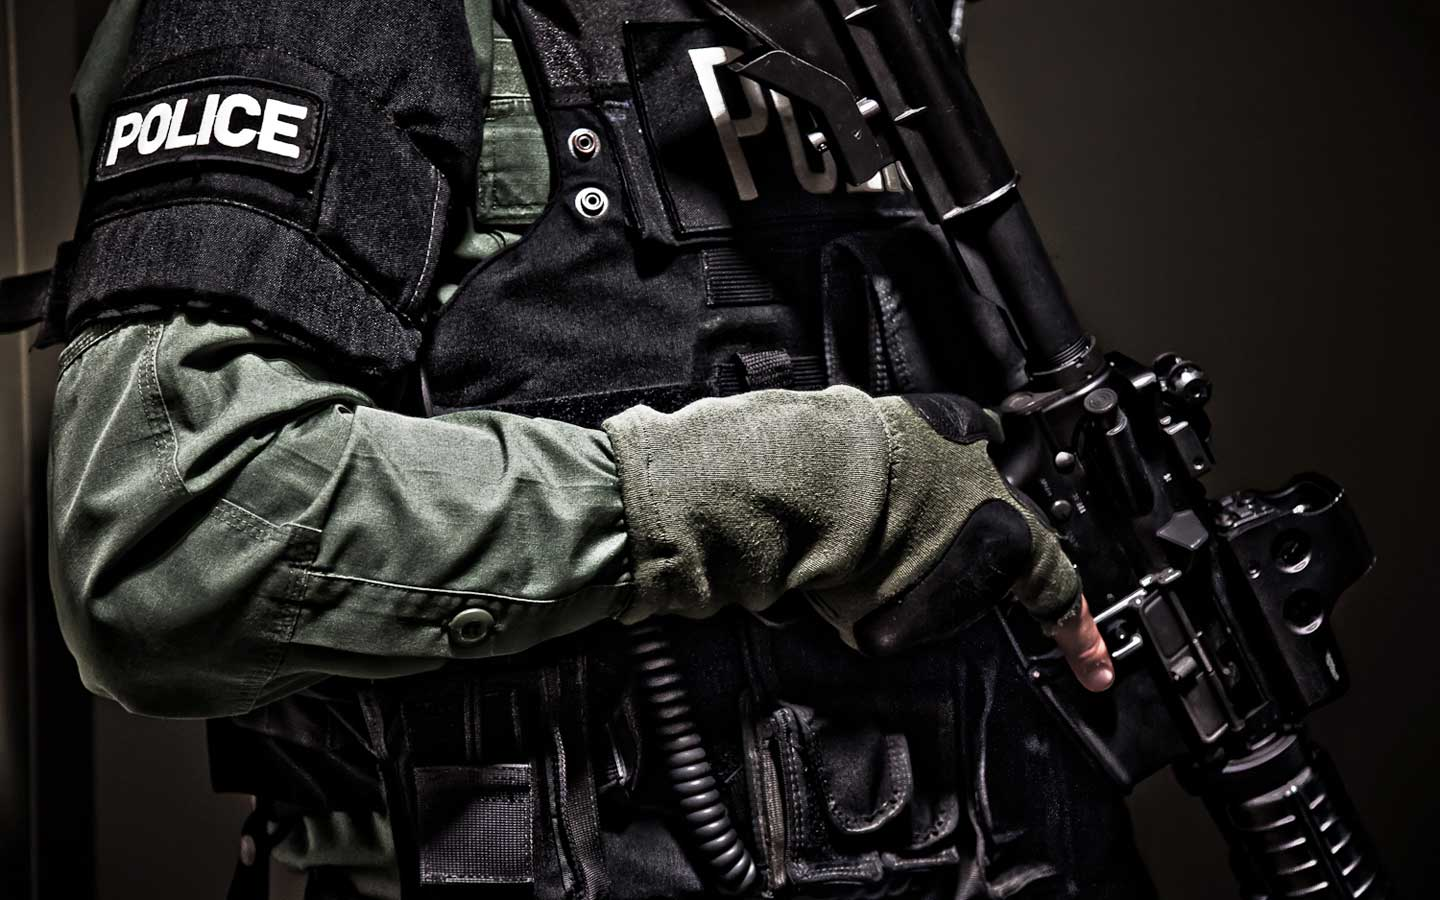 Free Police Screensavers and Wallpaper | HD Wallpapers | Pinterest